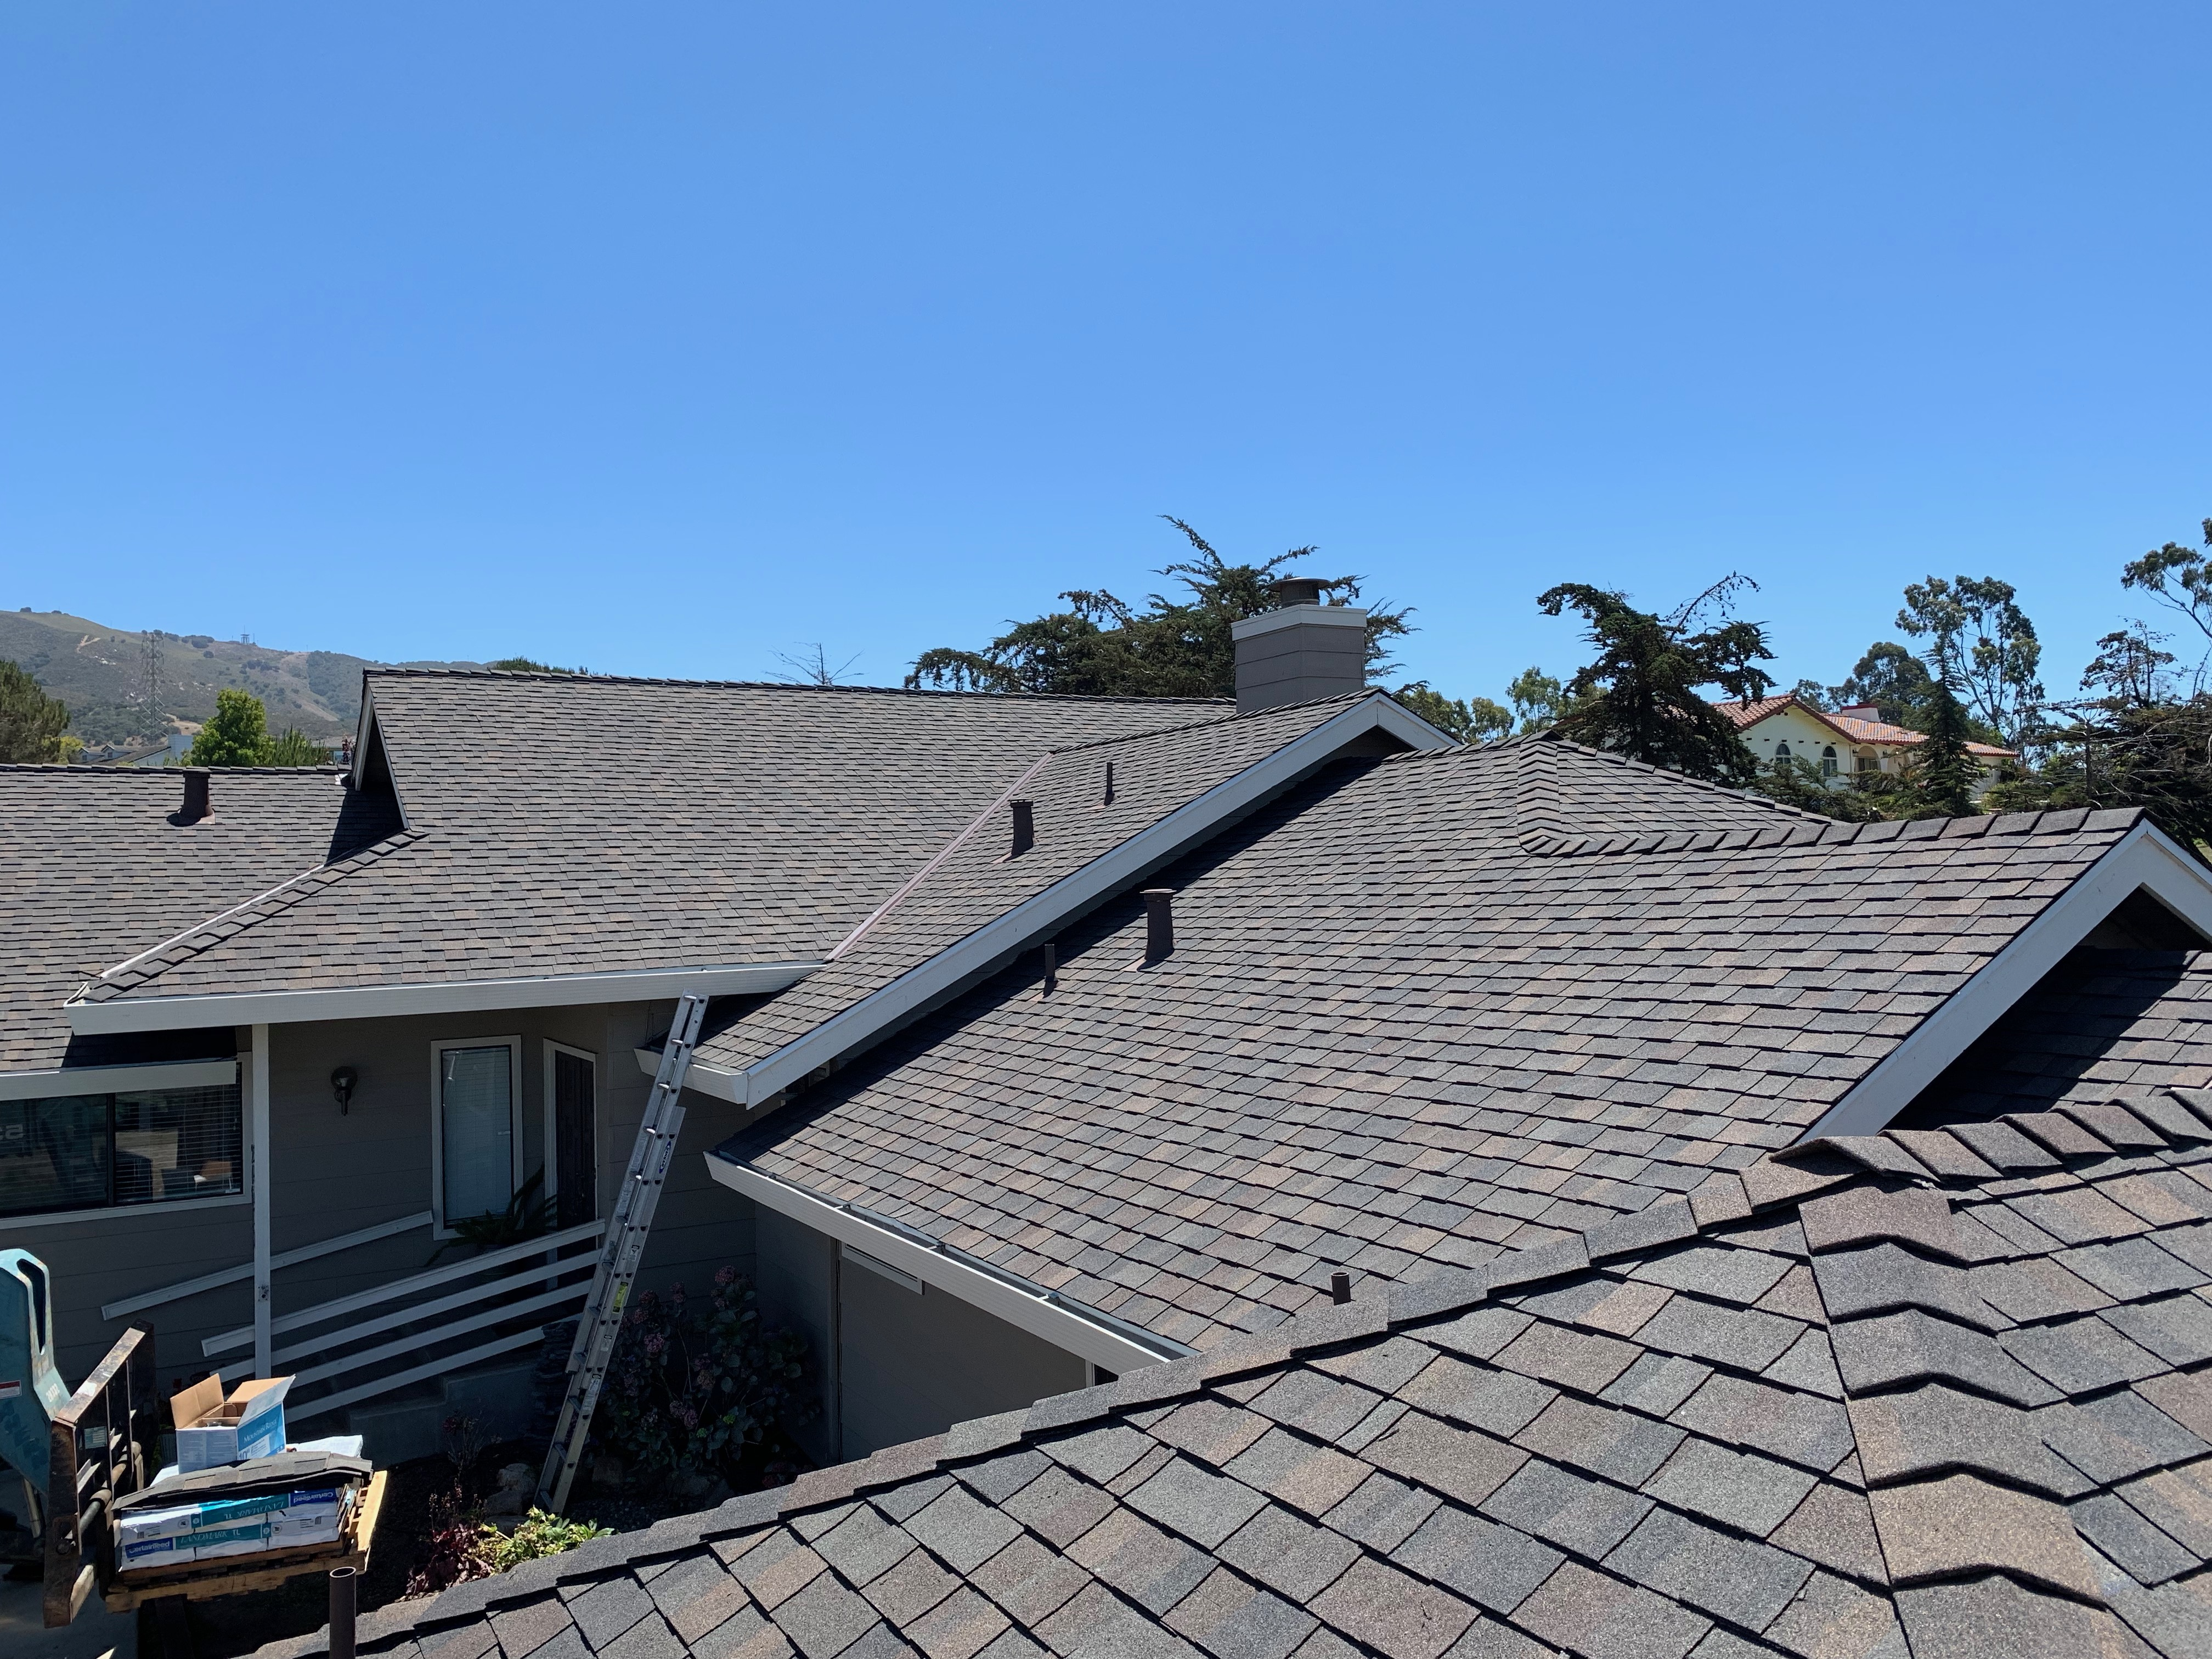 Composition shingle roof installed in Santa Cruz California by Redwood Roofing and Repair.